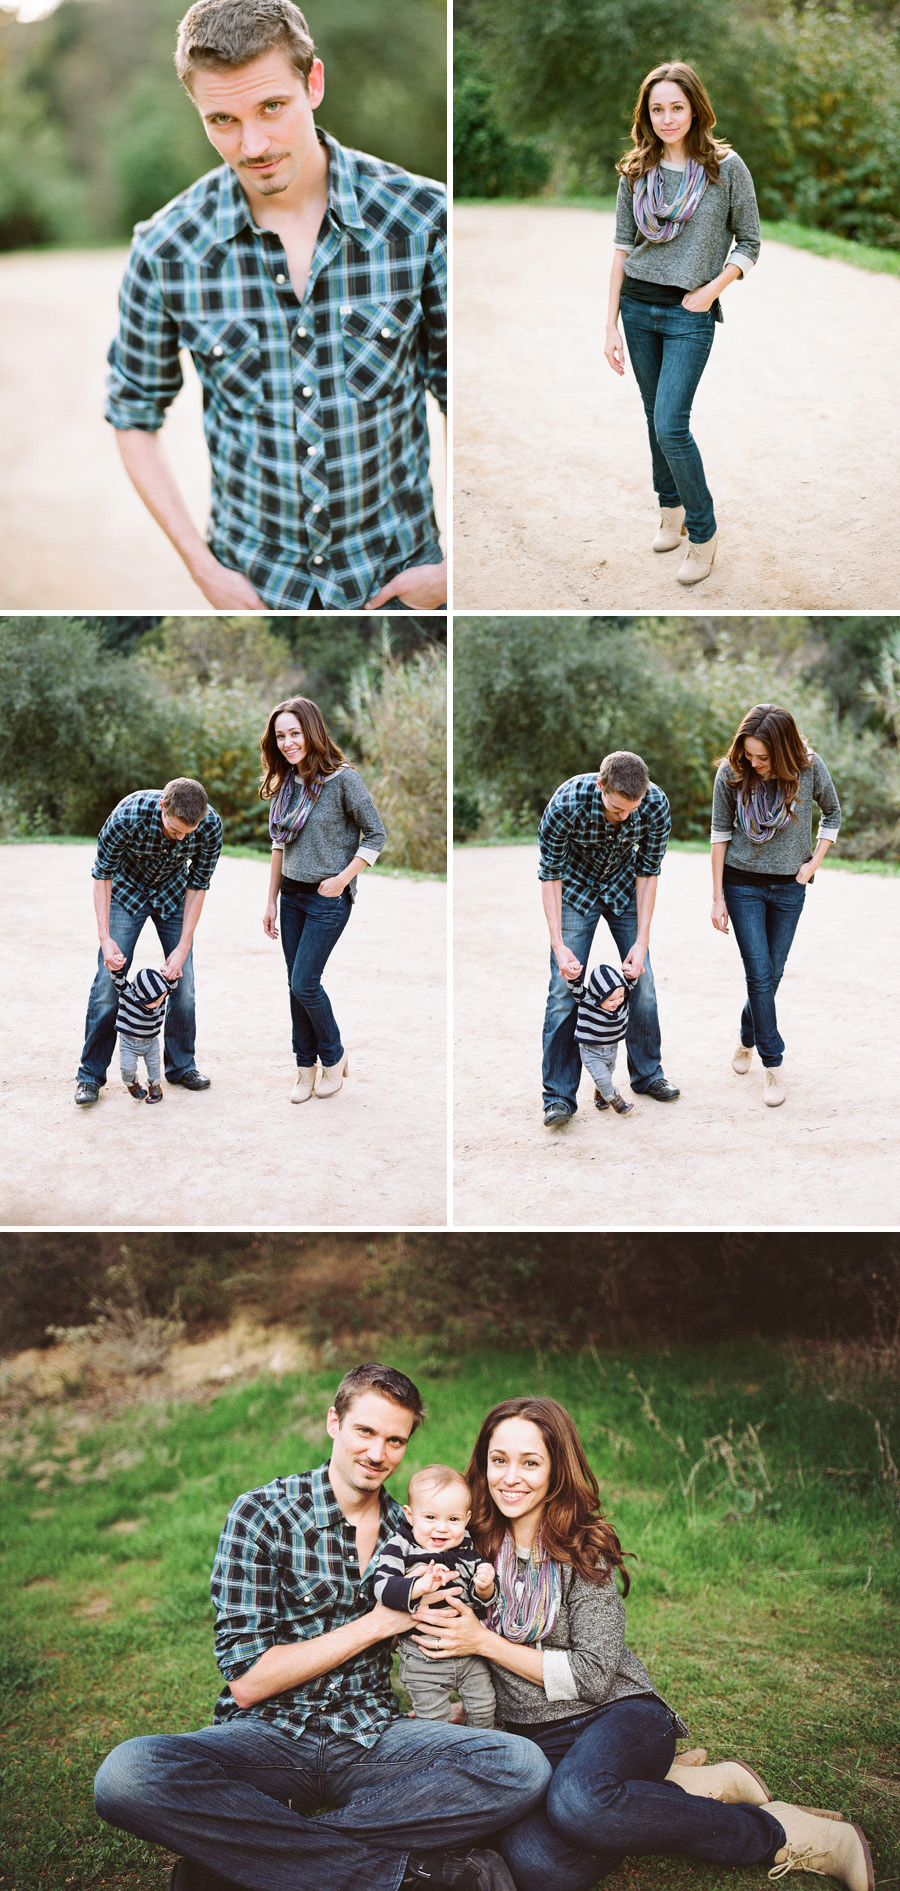 Autumn Resser and Jesse Warren Family Photos at Griffith Observatory 0013